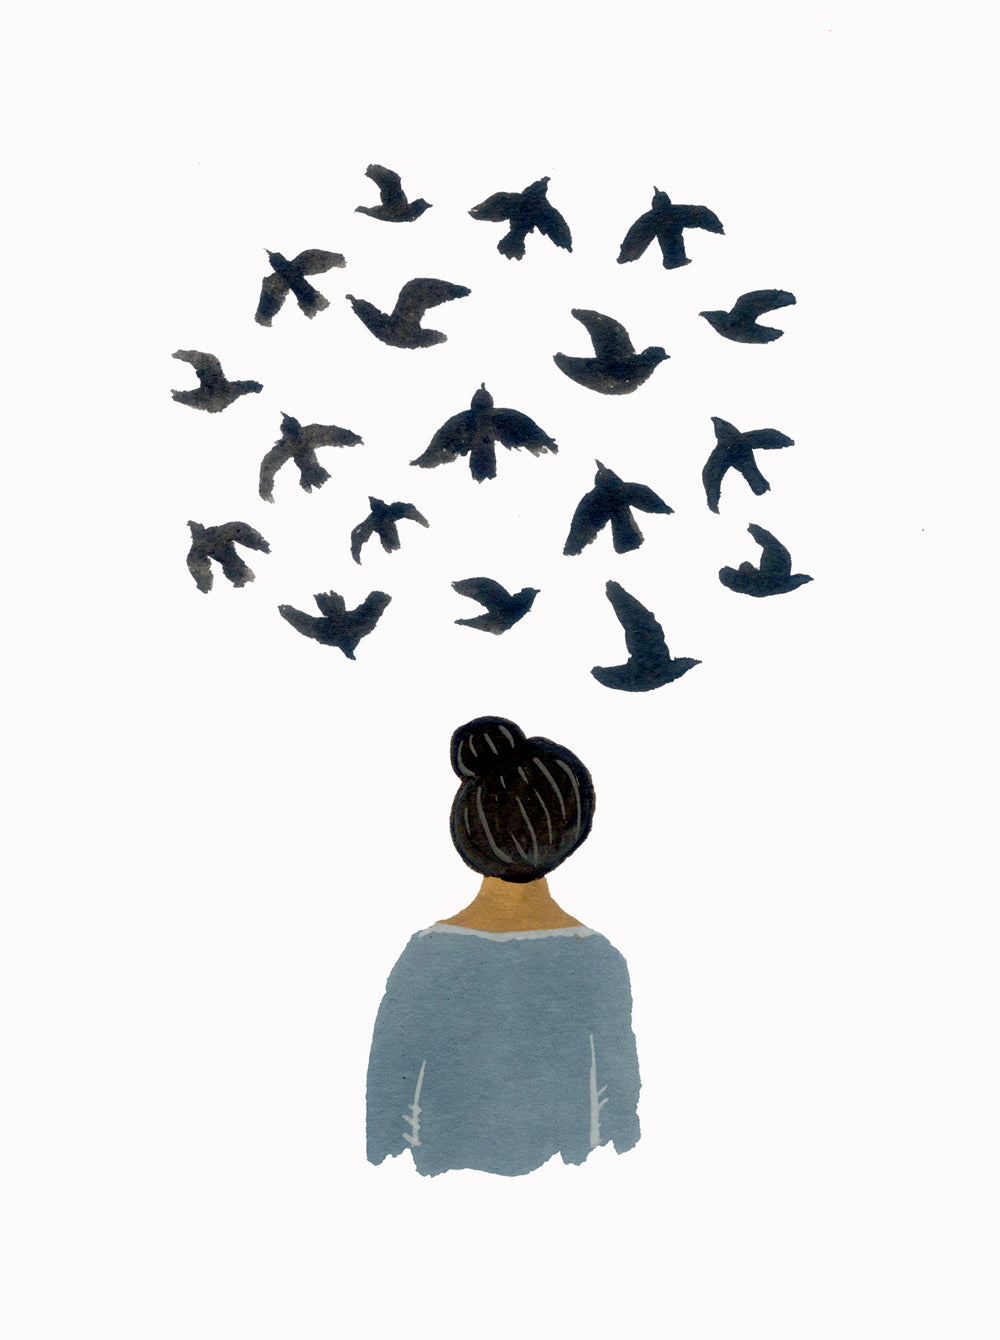 Art print, bird thoughts.